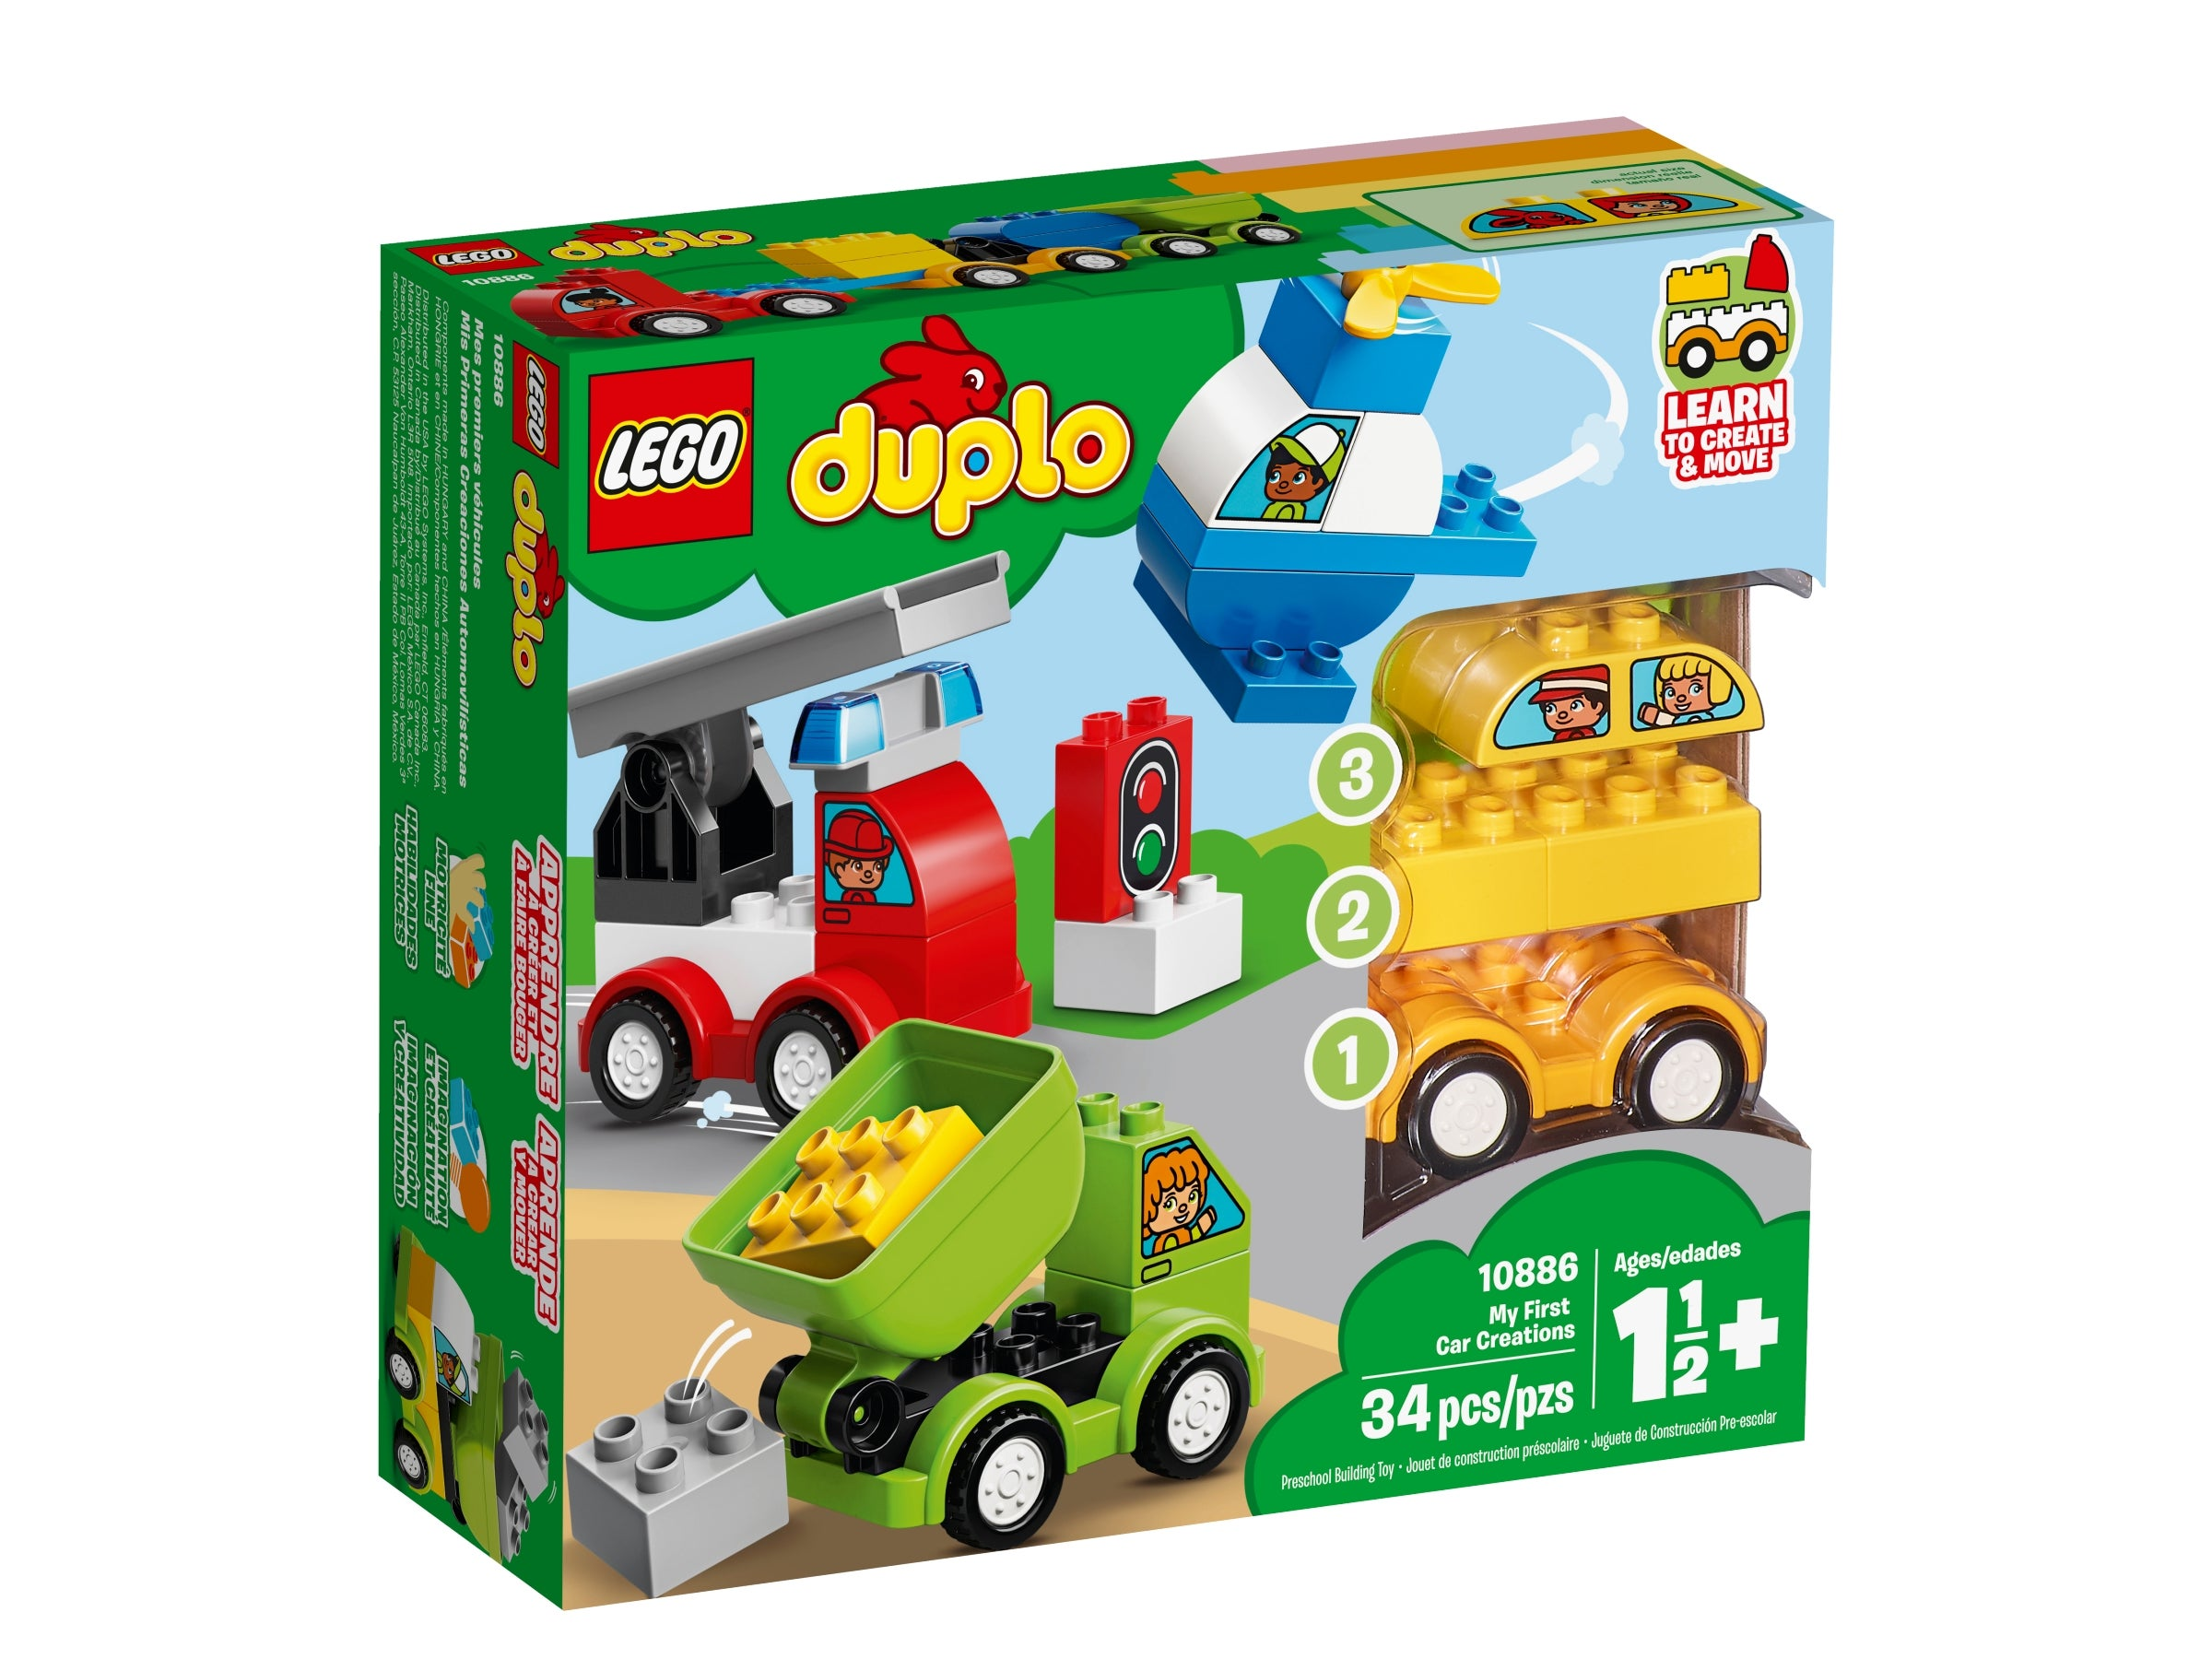 Lego My First Car Creations 10886 Learn To Create /& Move Vehicles 1.5 Years